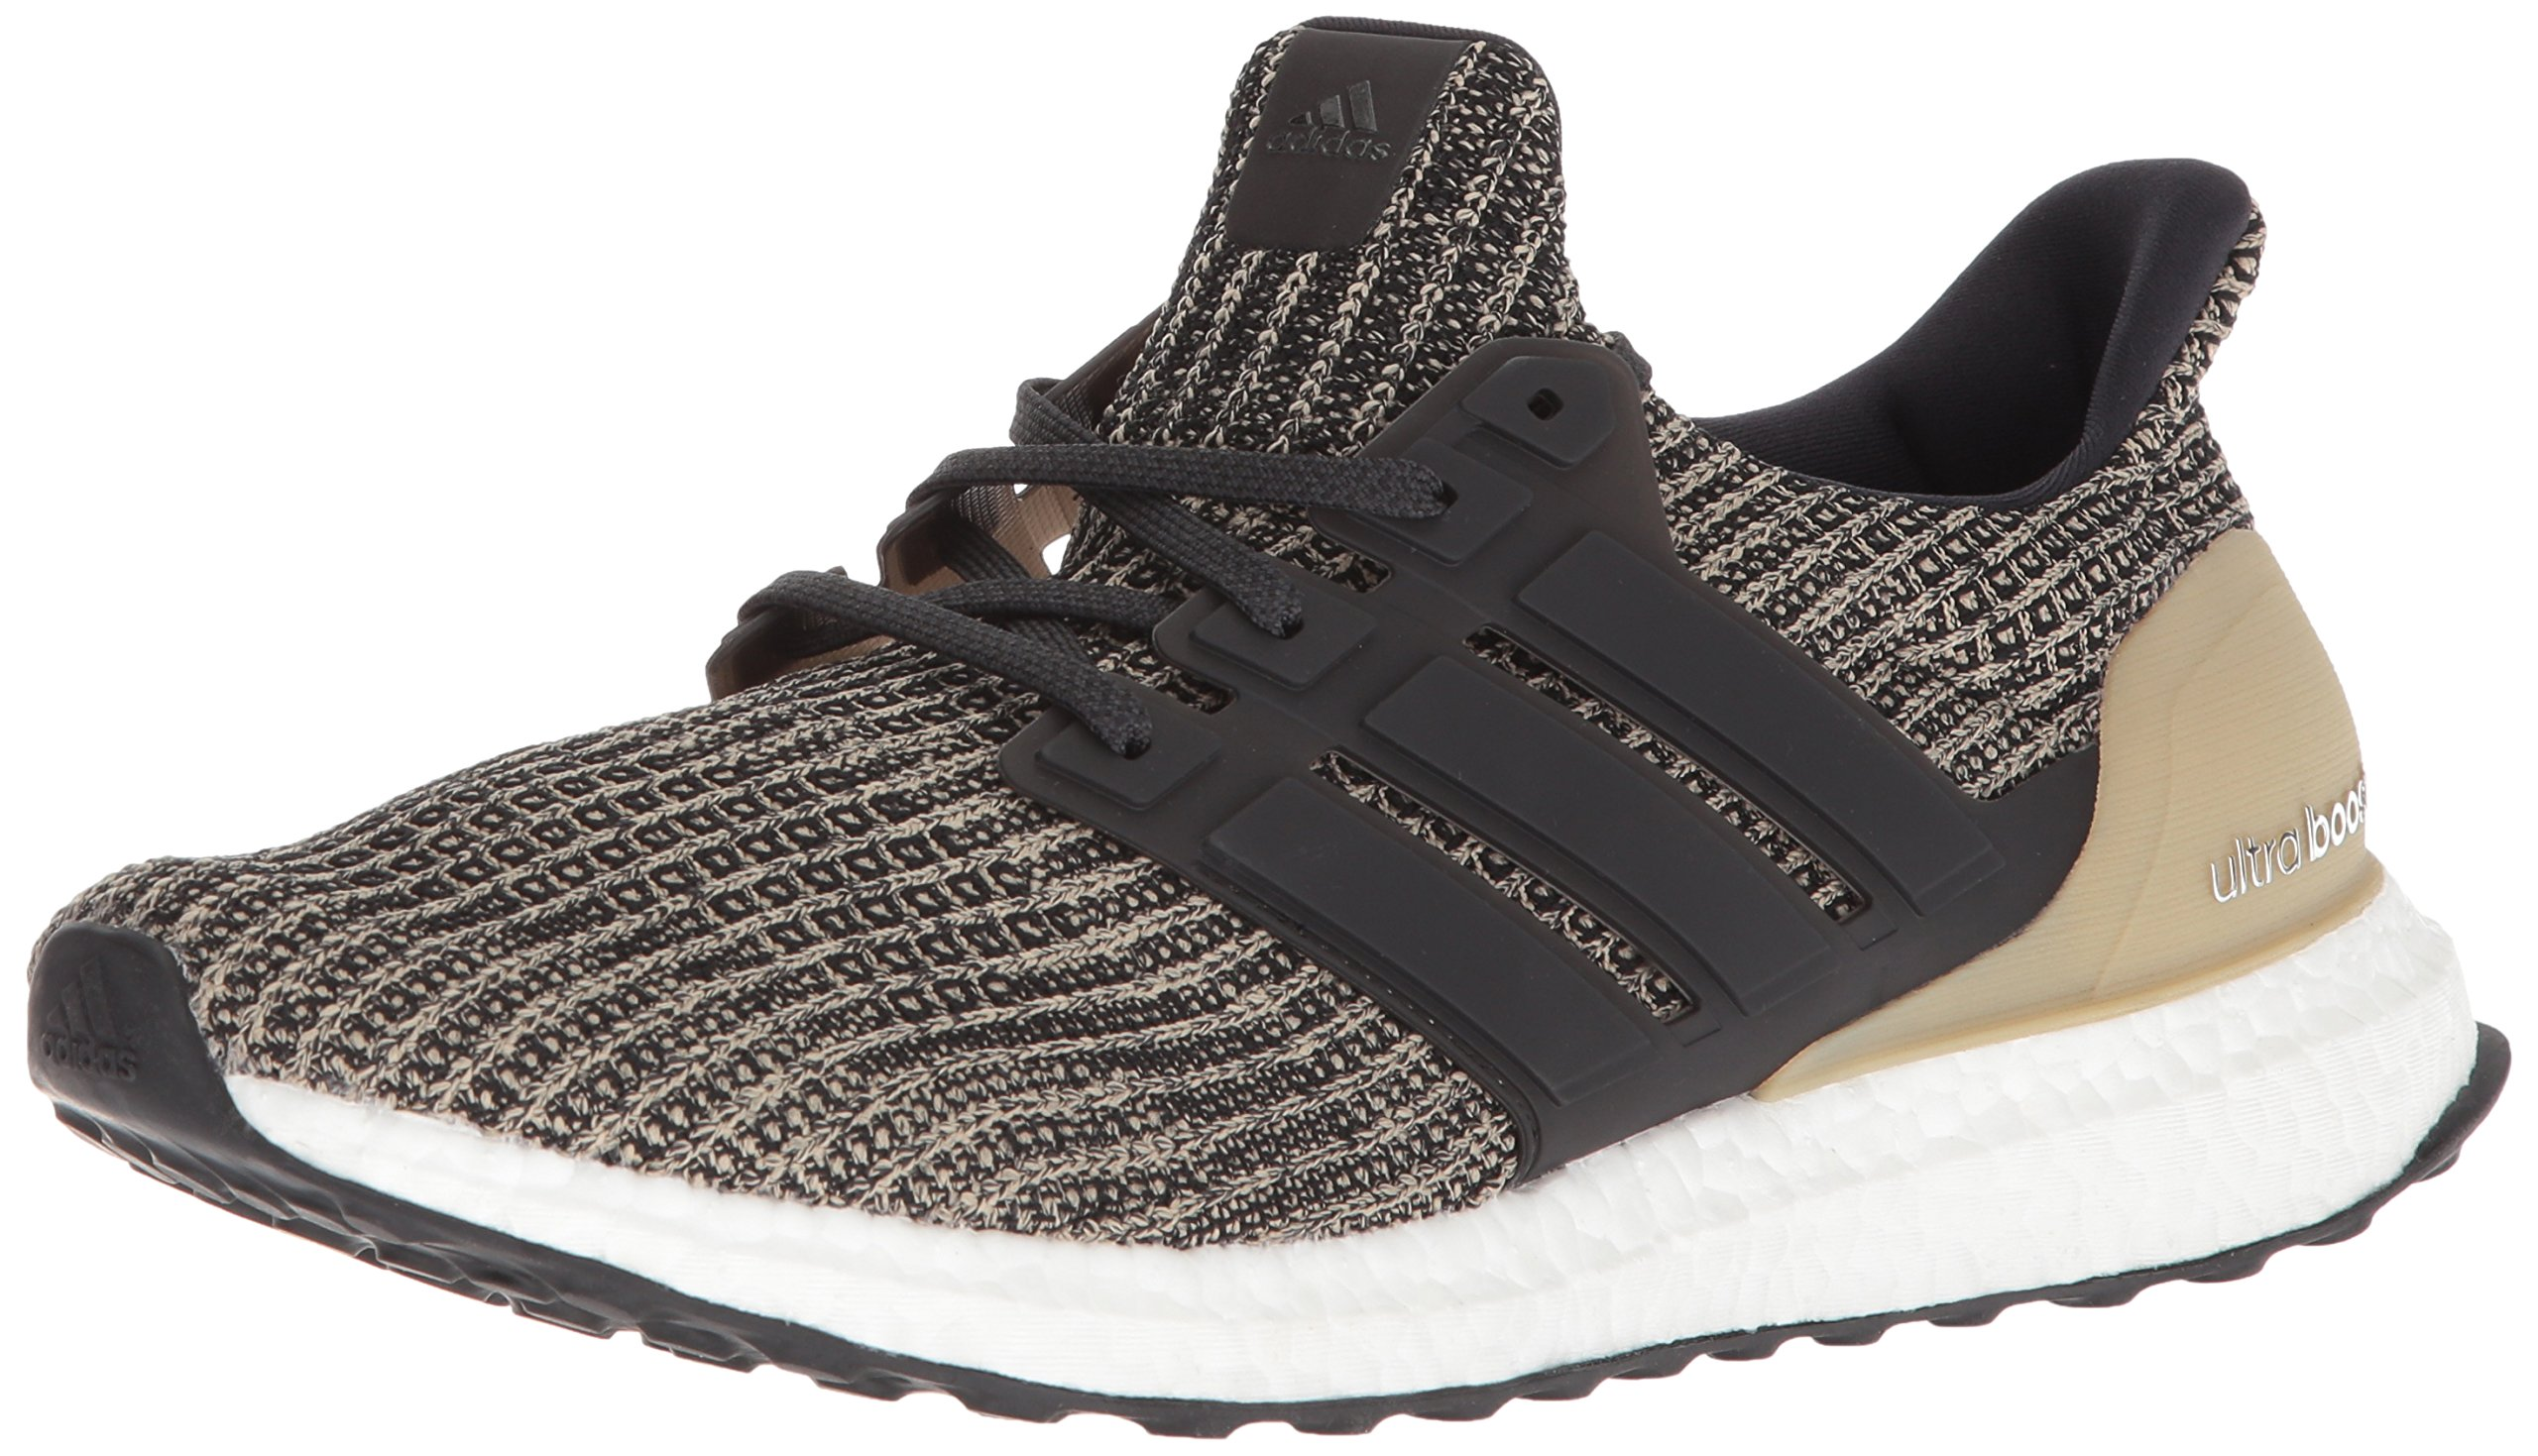 adidas Men's Ultraboost, Black/raw Gold, 6.5 M US